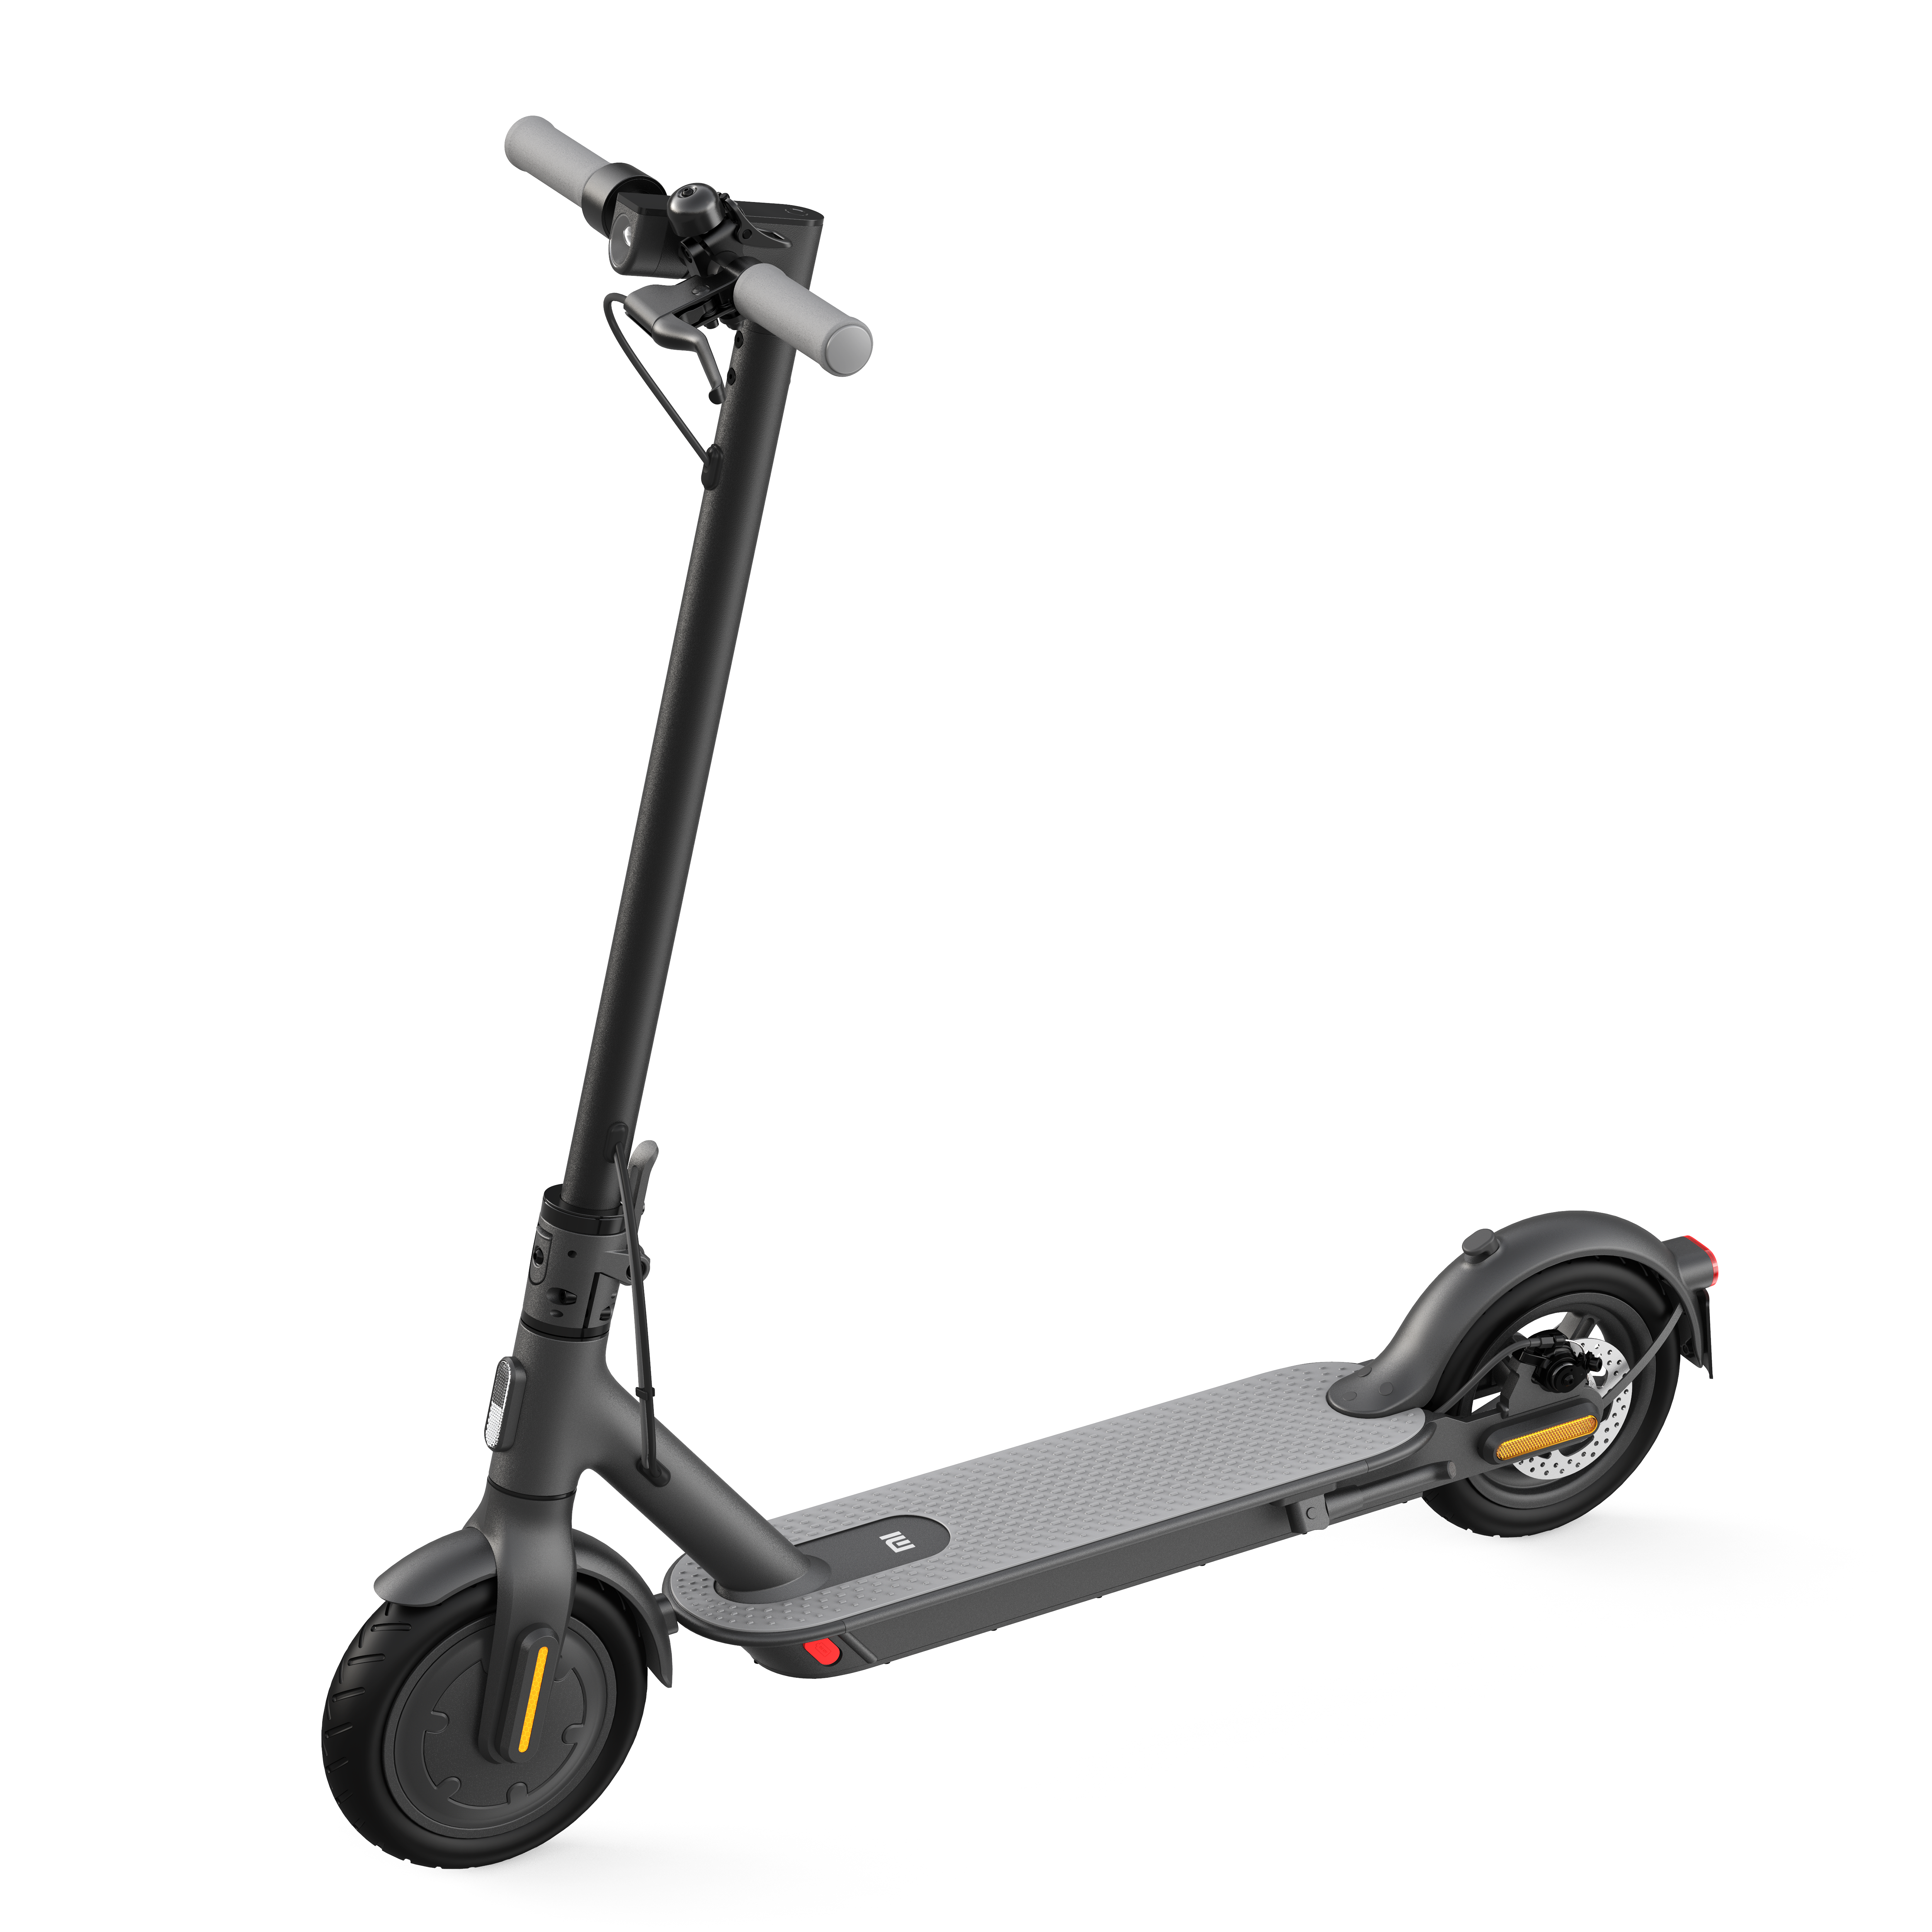 Scooter Carrefour